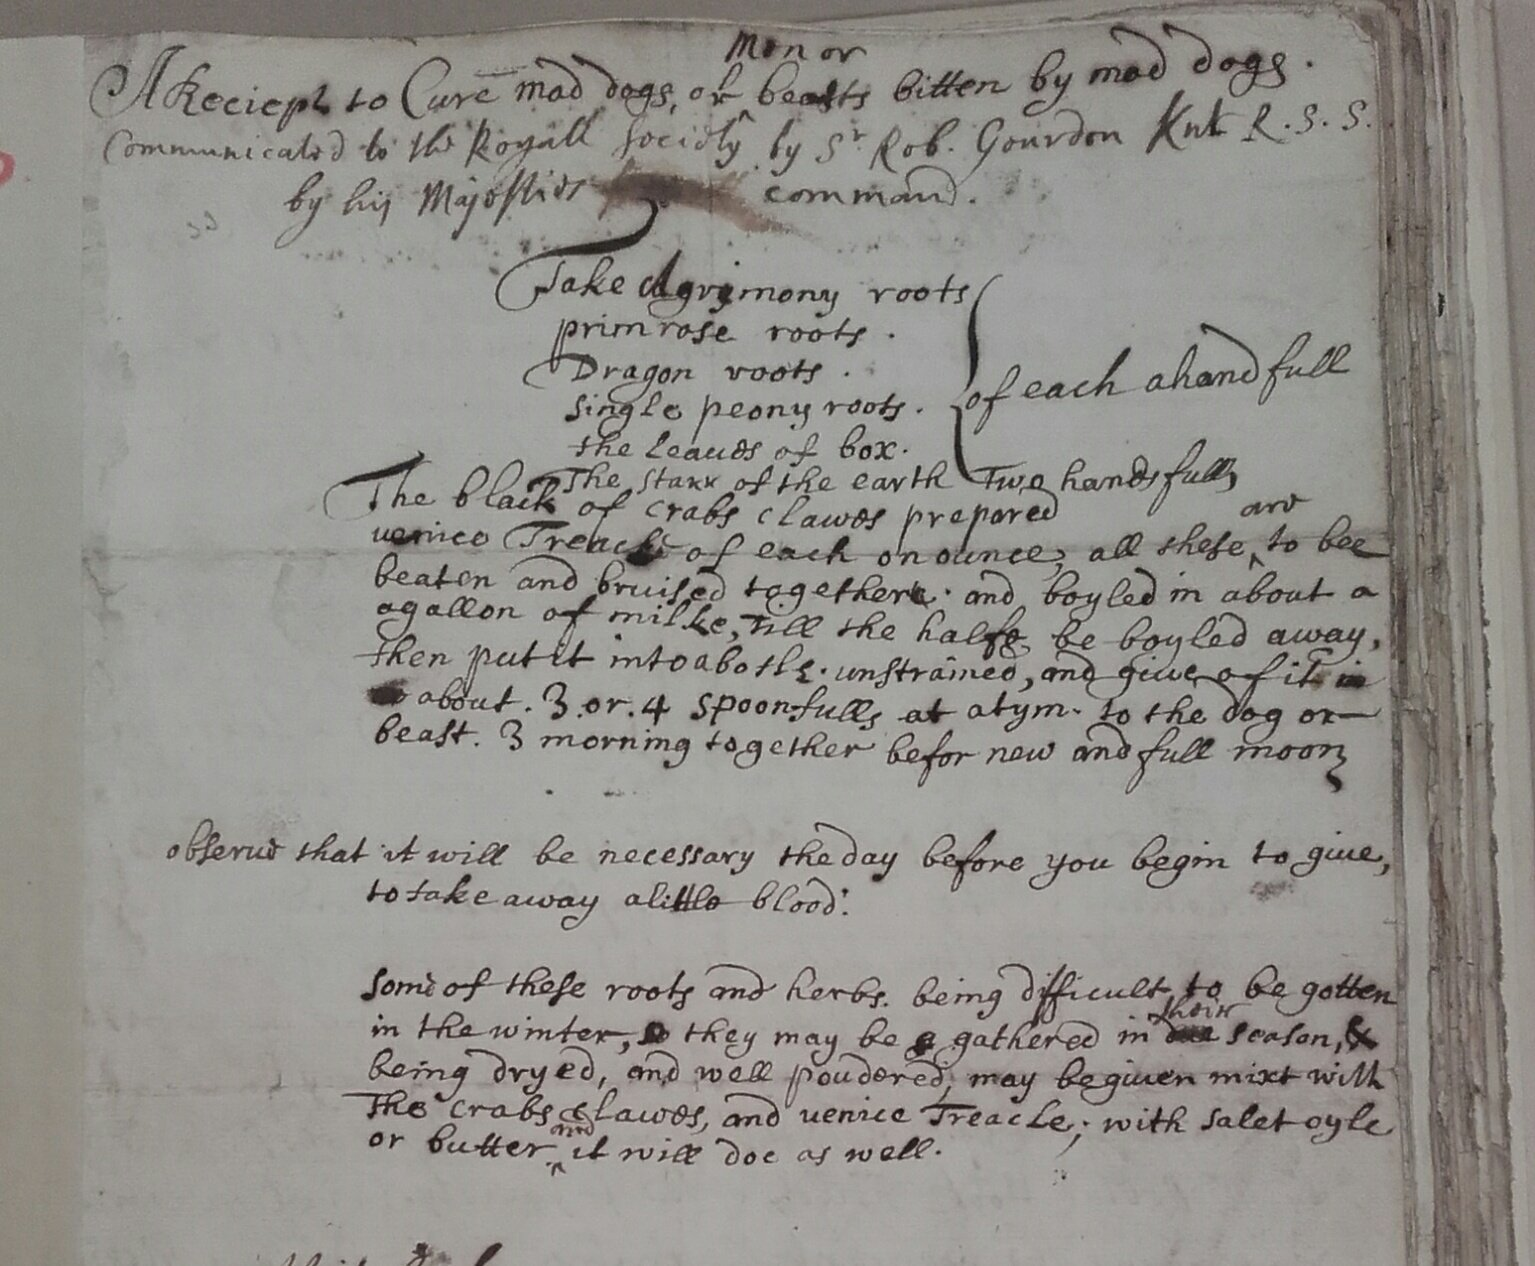 "Another #recipe from the #physick volume Cl.P\14i ""to cure mad dogs or men or beasts bitten by mad dogs"" @royalsociety #recipesconf https://t.co/vIjCbGzQWH"